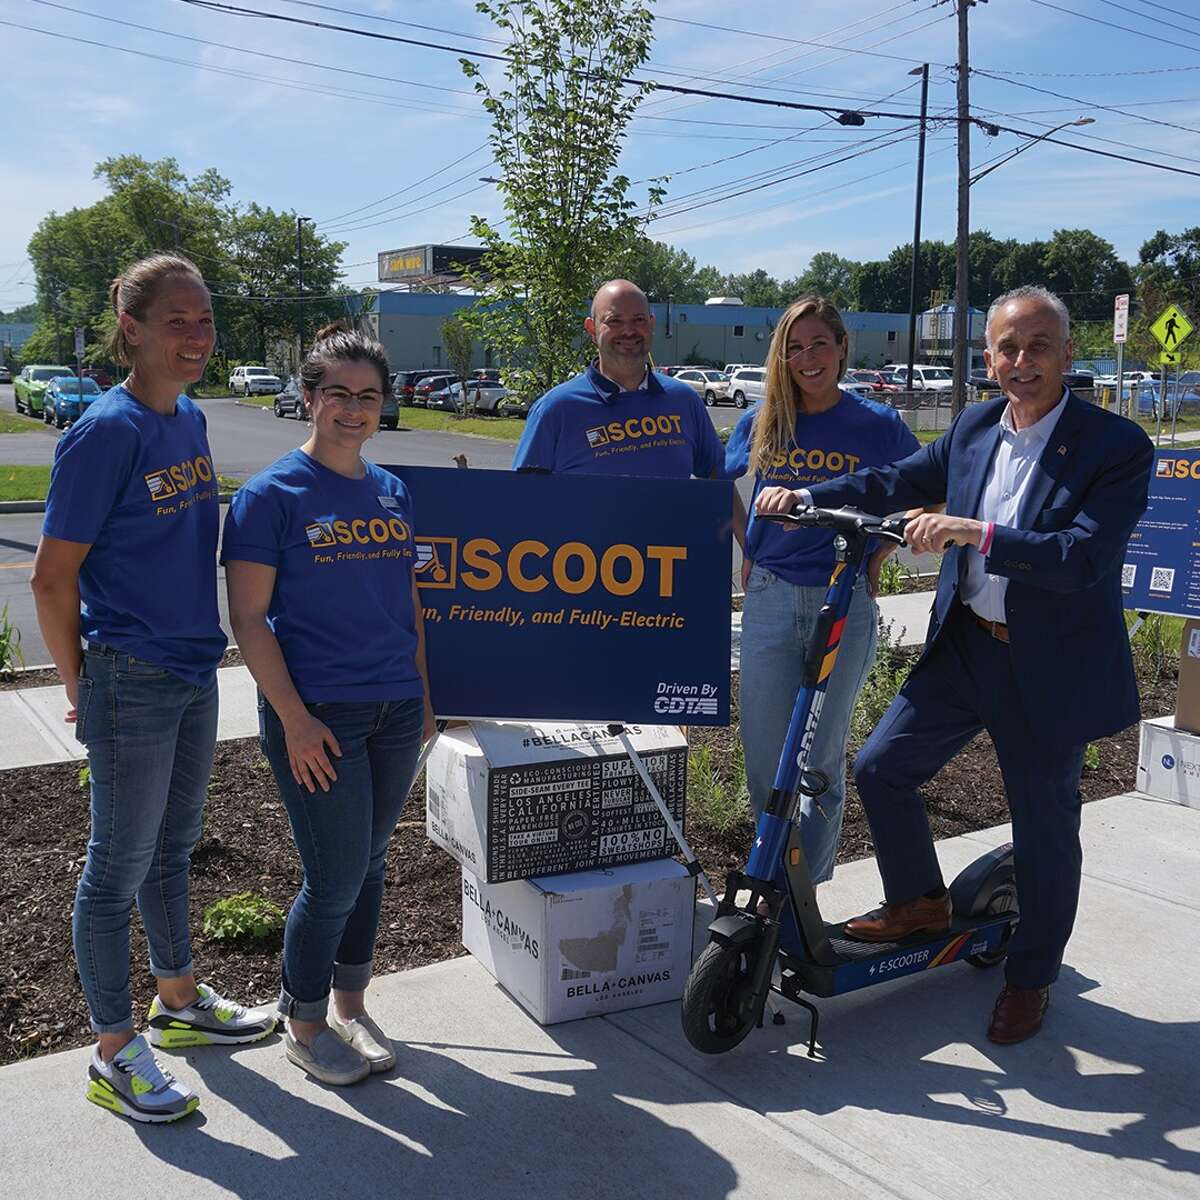 The Capital District Transportation Authority showed off electric scooters that will be available to rent starting in July 2021.